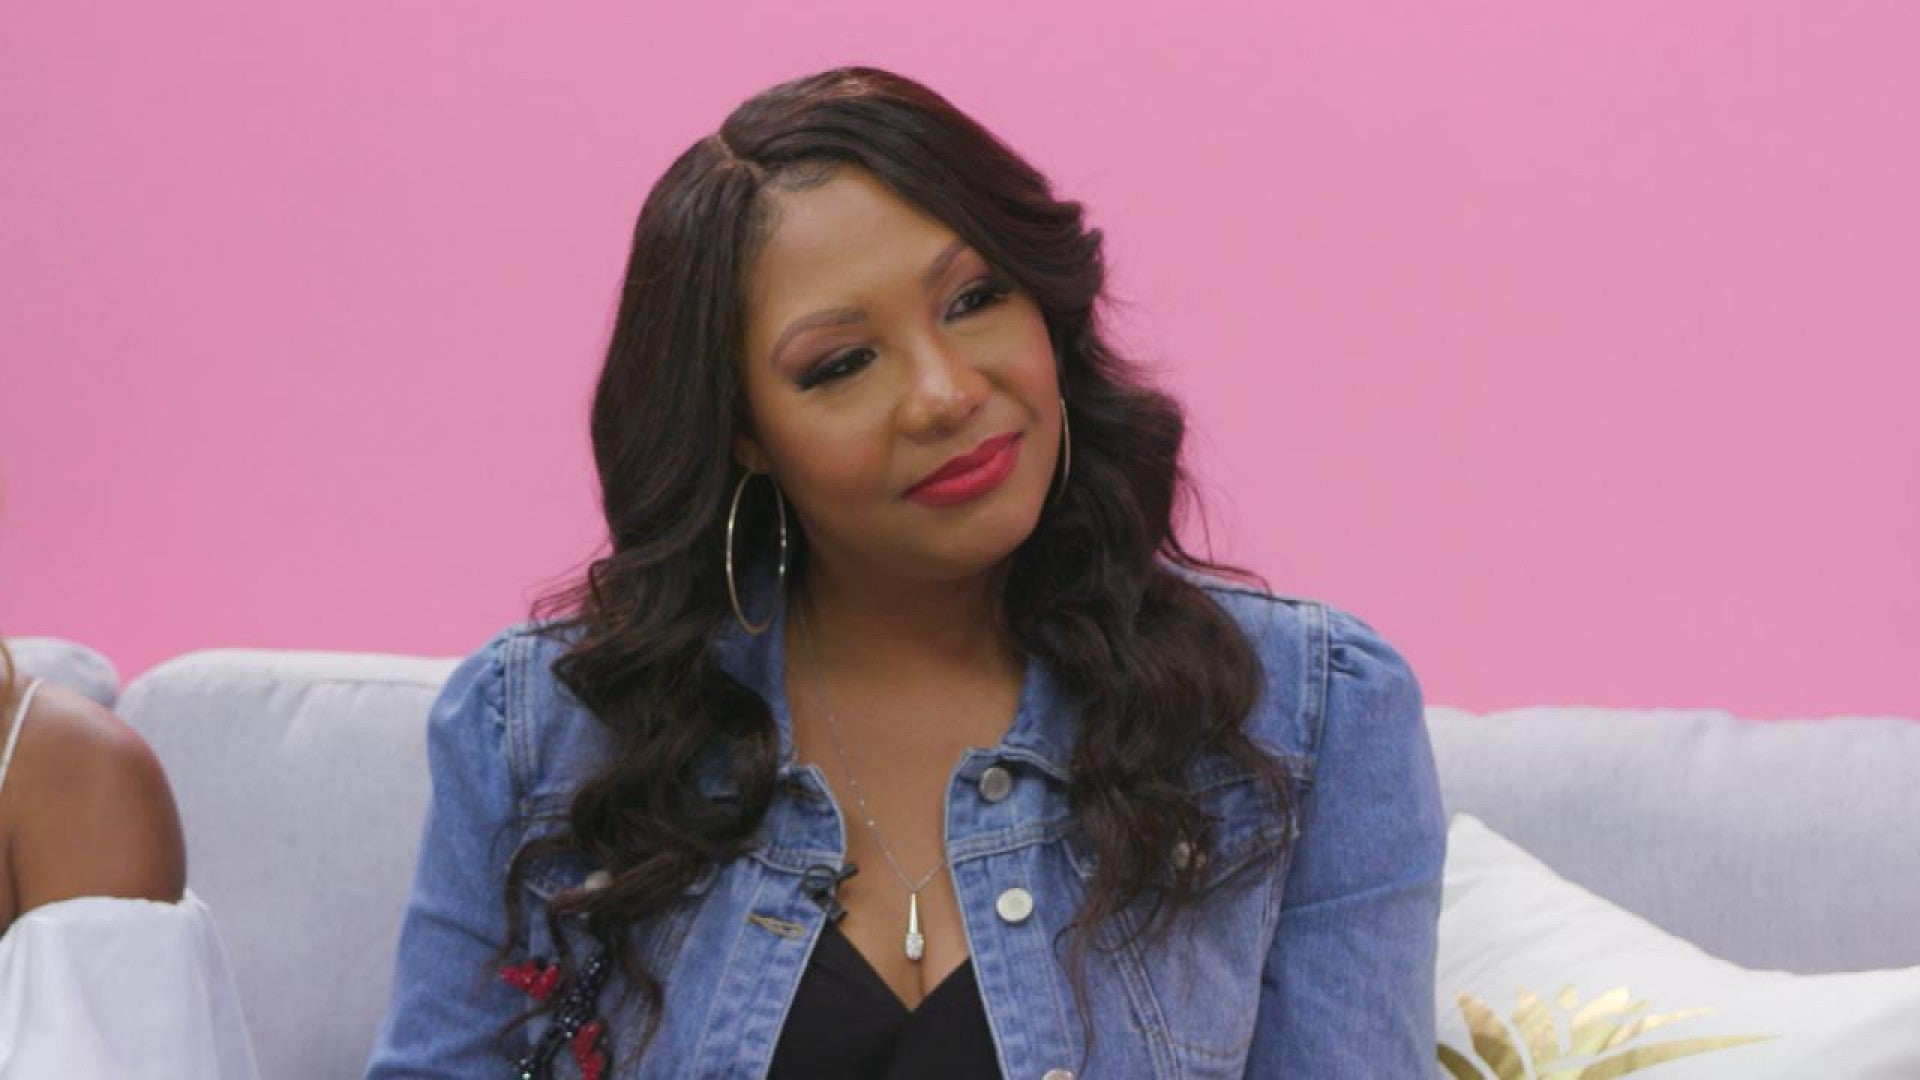 """traci-braxton-posts-an-emotional-message-about-a-tragic-death-on-her-social-media-account"""